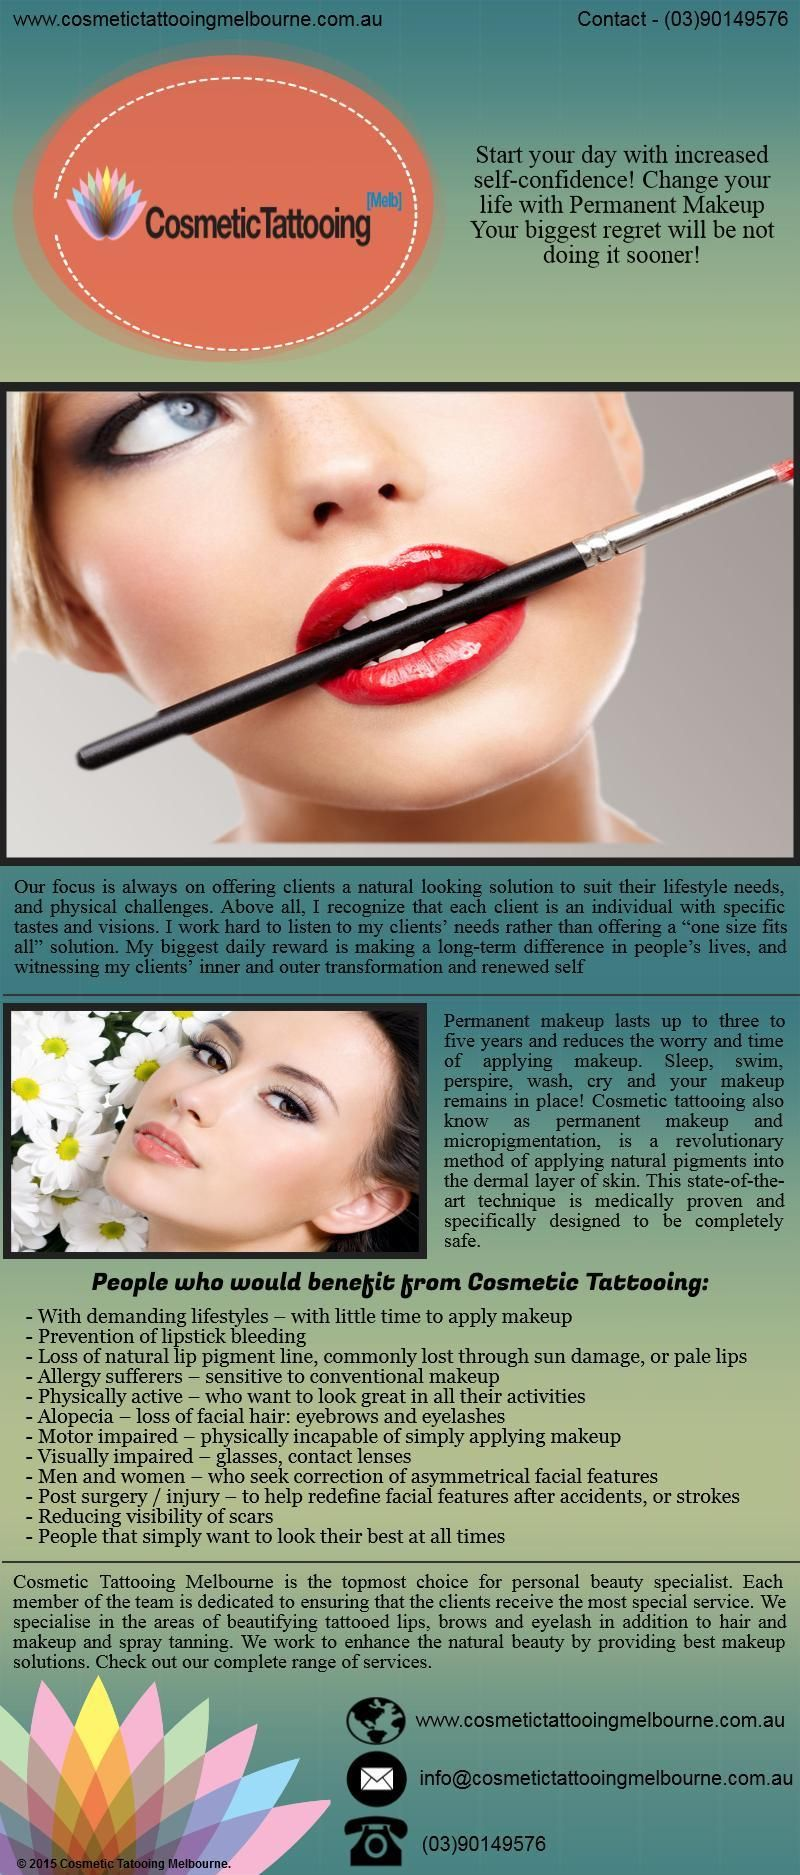 Cosmetic Tattooing Melbourne Has Been Providing Immaculate